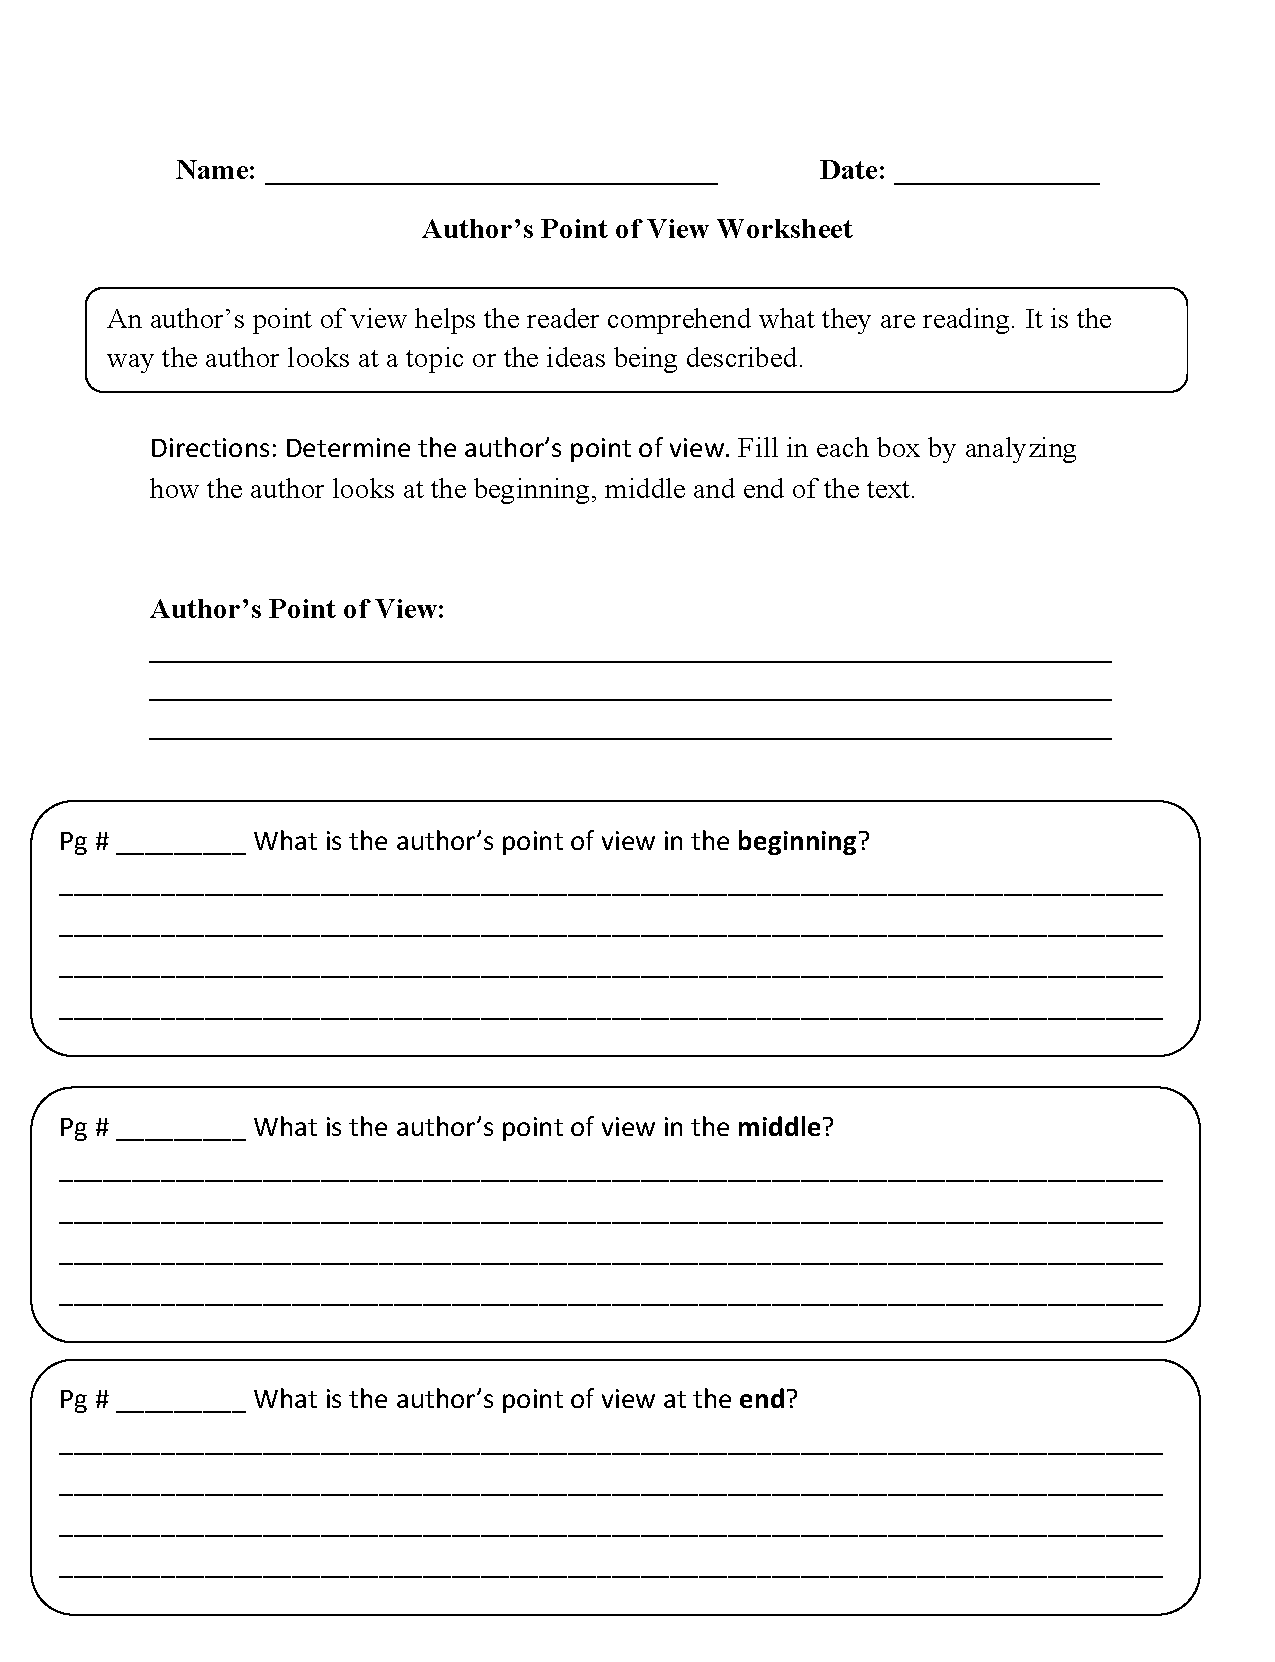 Proatmealus  Wonderful Englishlinxcom  Point Of View Worksheets With Interesting Point Of View Worksheets With Awesome Finding The Slope Worksheets Also Worksheets For Adding And Subtracting Integers In Addition Grade  Writing Worksheets And Valentine Addition Worksheets As Well As Sounds Worksheets Additionally Free Printable Math Worksheets Th Grade From Englishlinxcom With Proatmealus  Interesting Englishlinxcom  Point Of View Worksheets With Awesome Point Of View Worksheets And Wonderful Finding The Slope Worksheets Also Worksheets For Adding And Subtracting Integers In Addition Grade  Writing Worksheets From Englishlinxcom